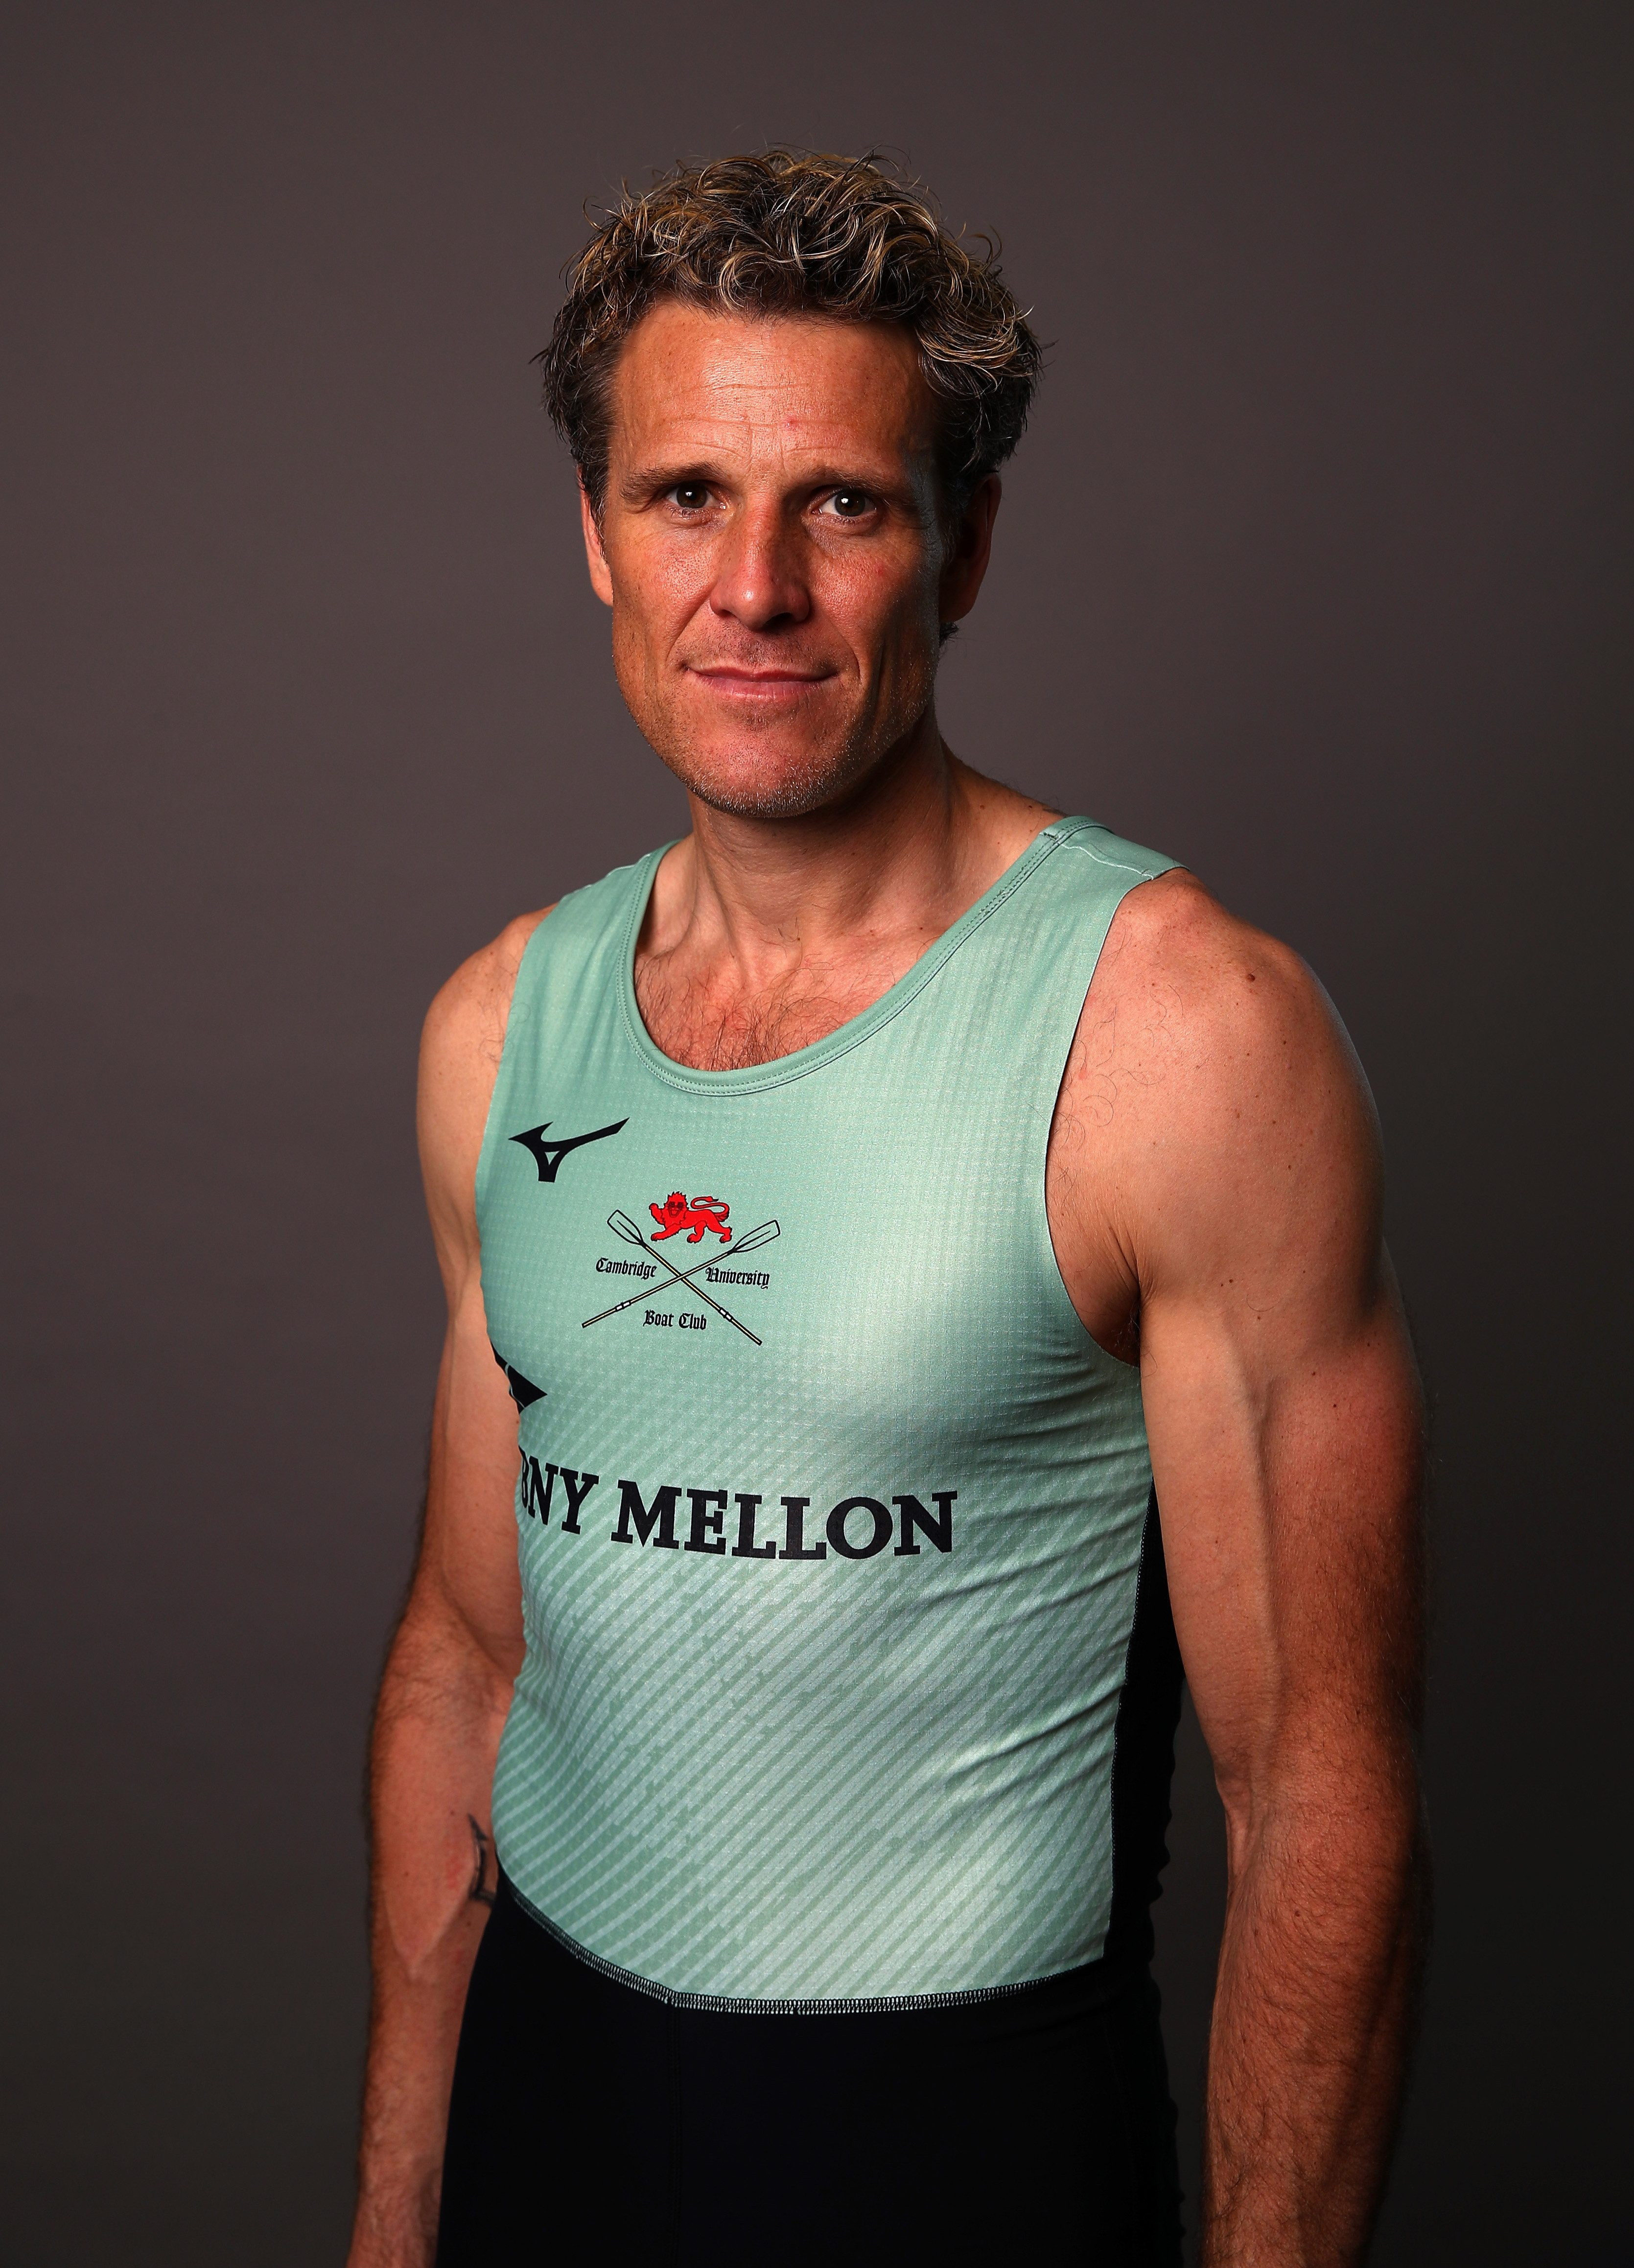 James Cracknell will become the oldest rower in the event at 46 years, 11 months and 2 days old at the time of the race